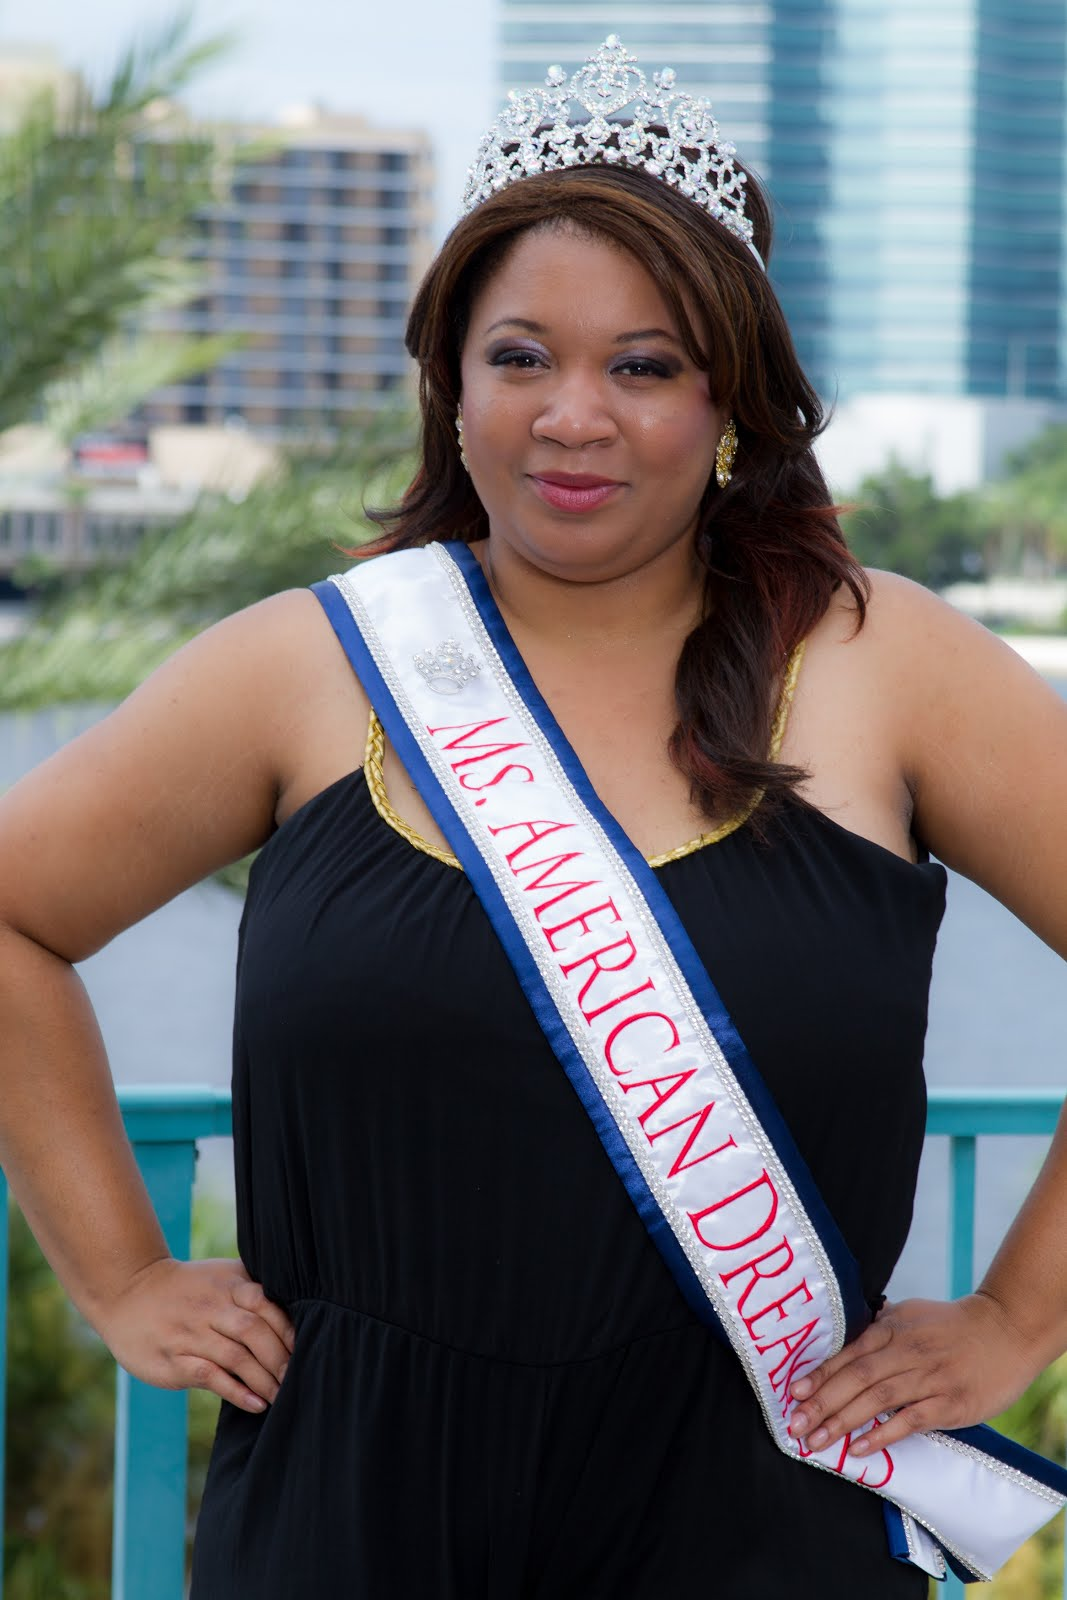 Ms. American Dream 2015